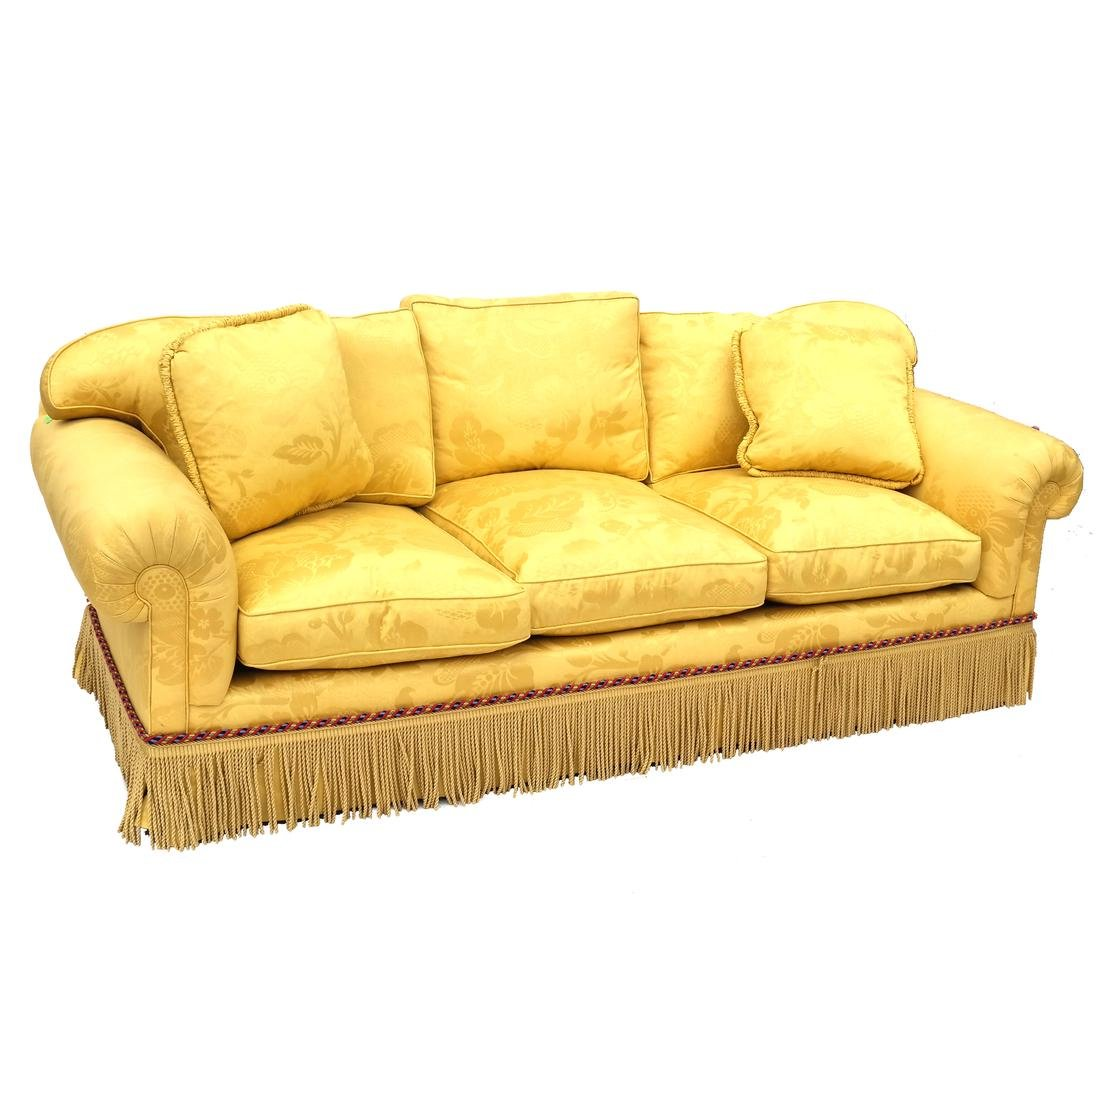 Contemporary Yellow Floral Decorated Upholstered Sofa